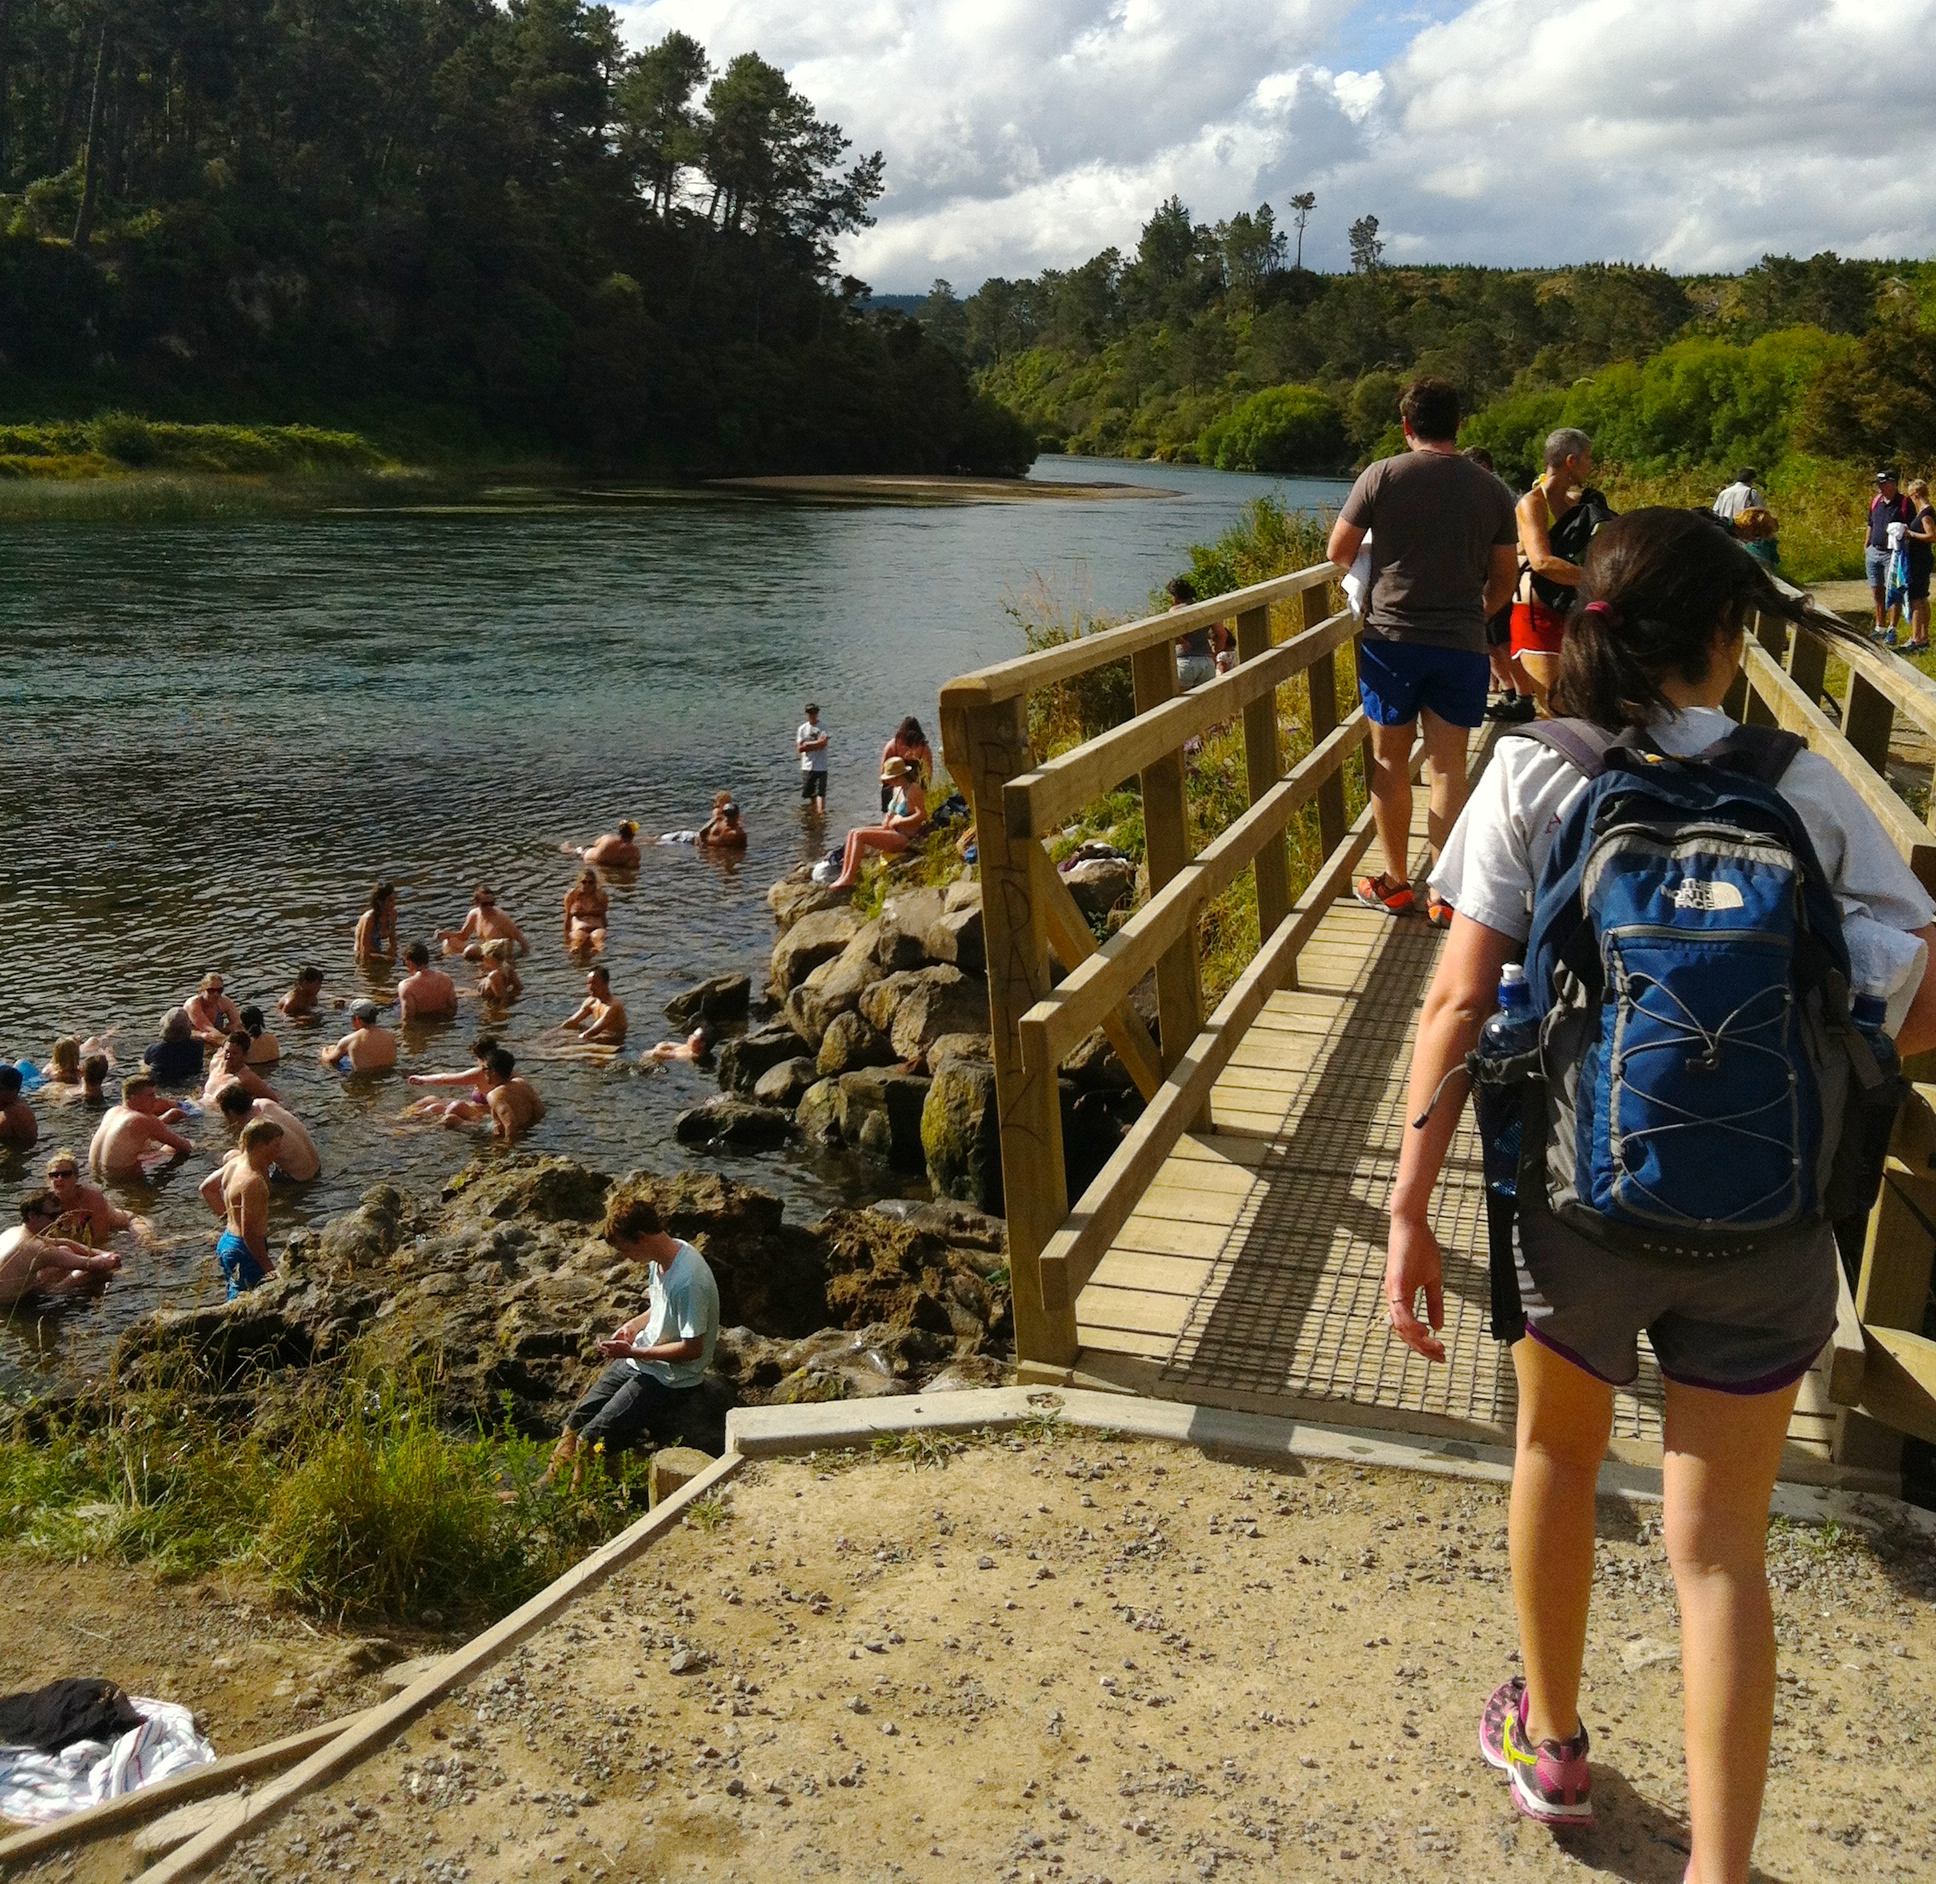 We decided to save hot springs for last. There are many natural hot springs around New Zealand. Definitely a must-do!